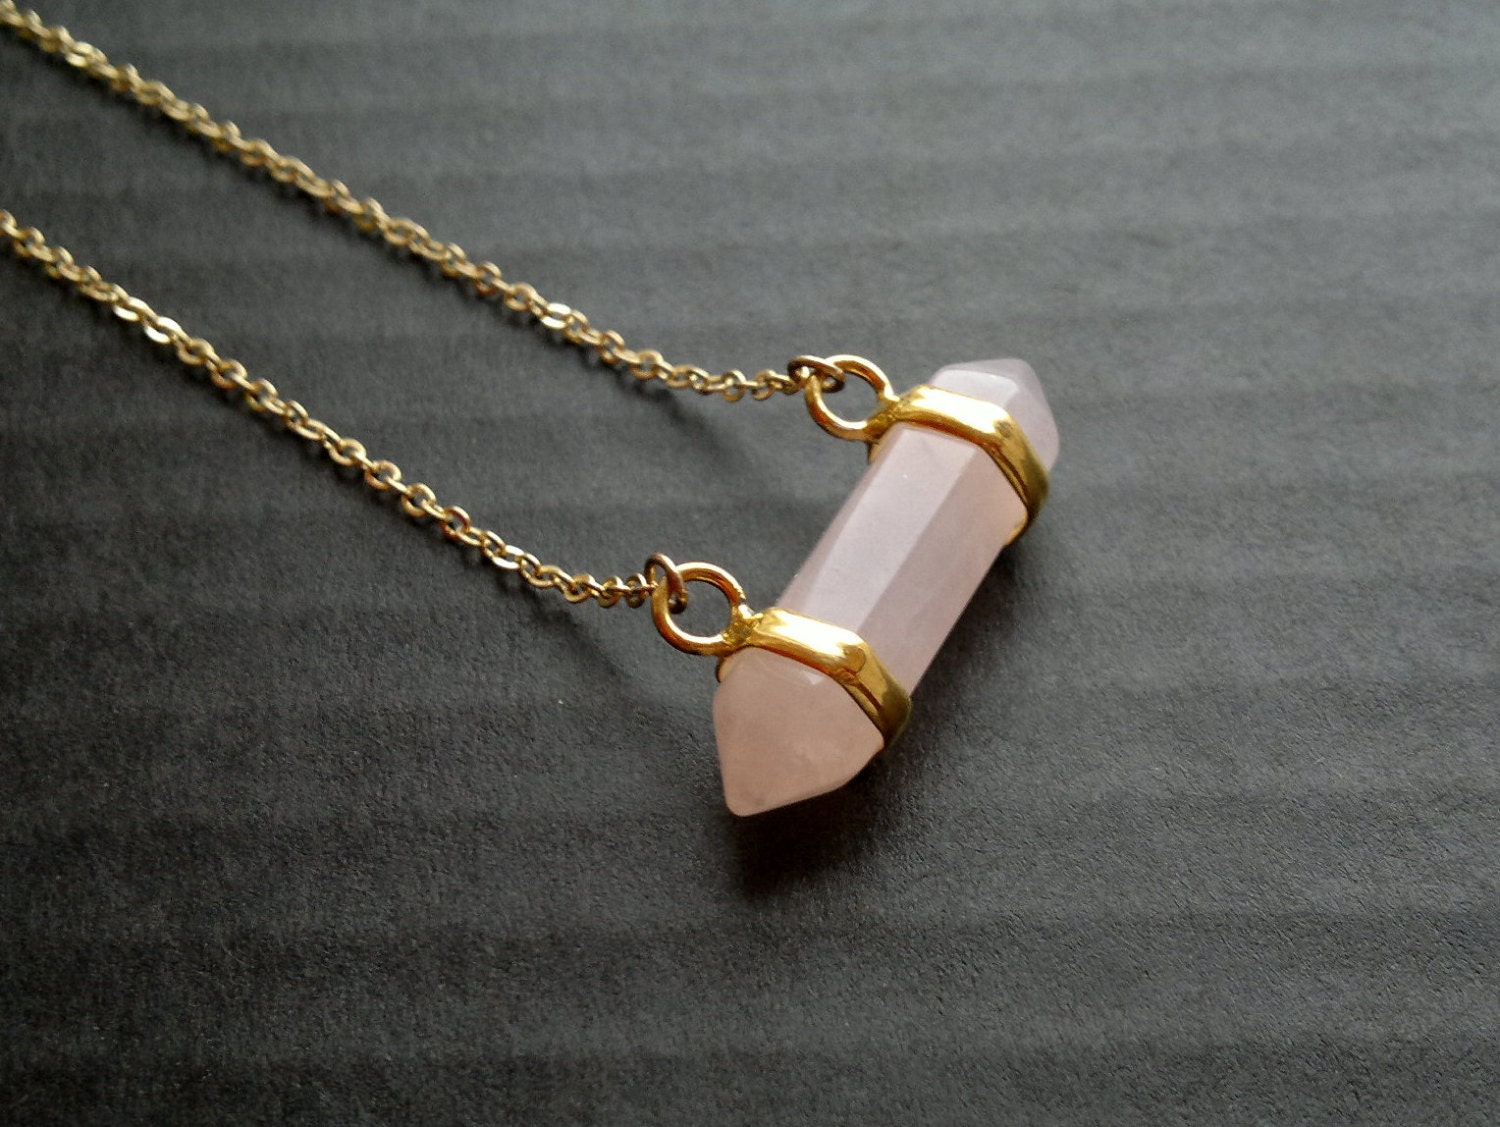 wrap wire pink pendants fluorite handmade item quartz in amethyst necklace new lemon women from natural purple necklaces fashion irregular pendant crystal jewelry